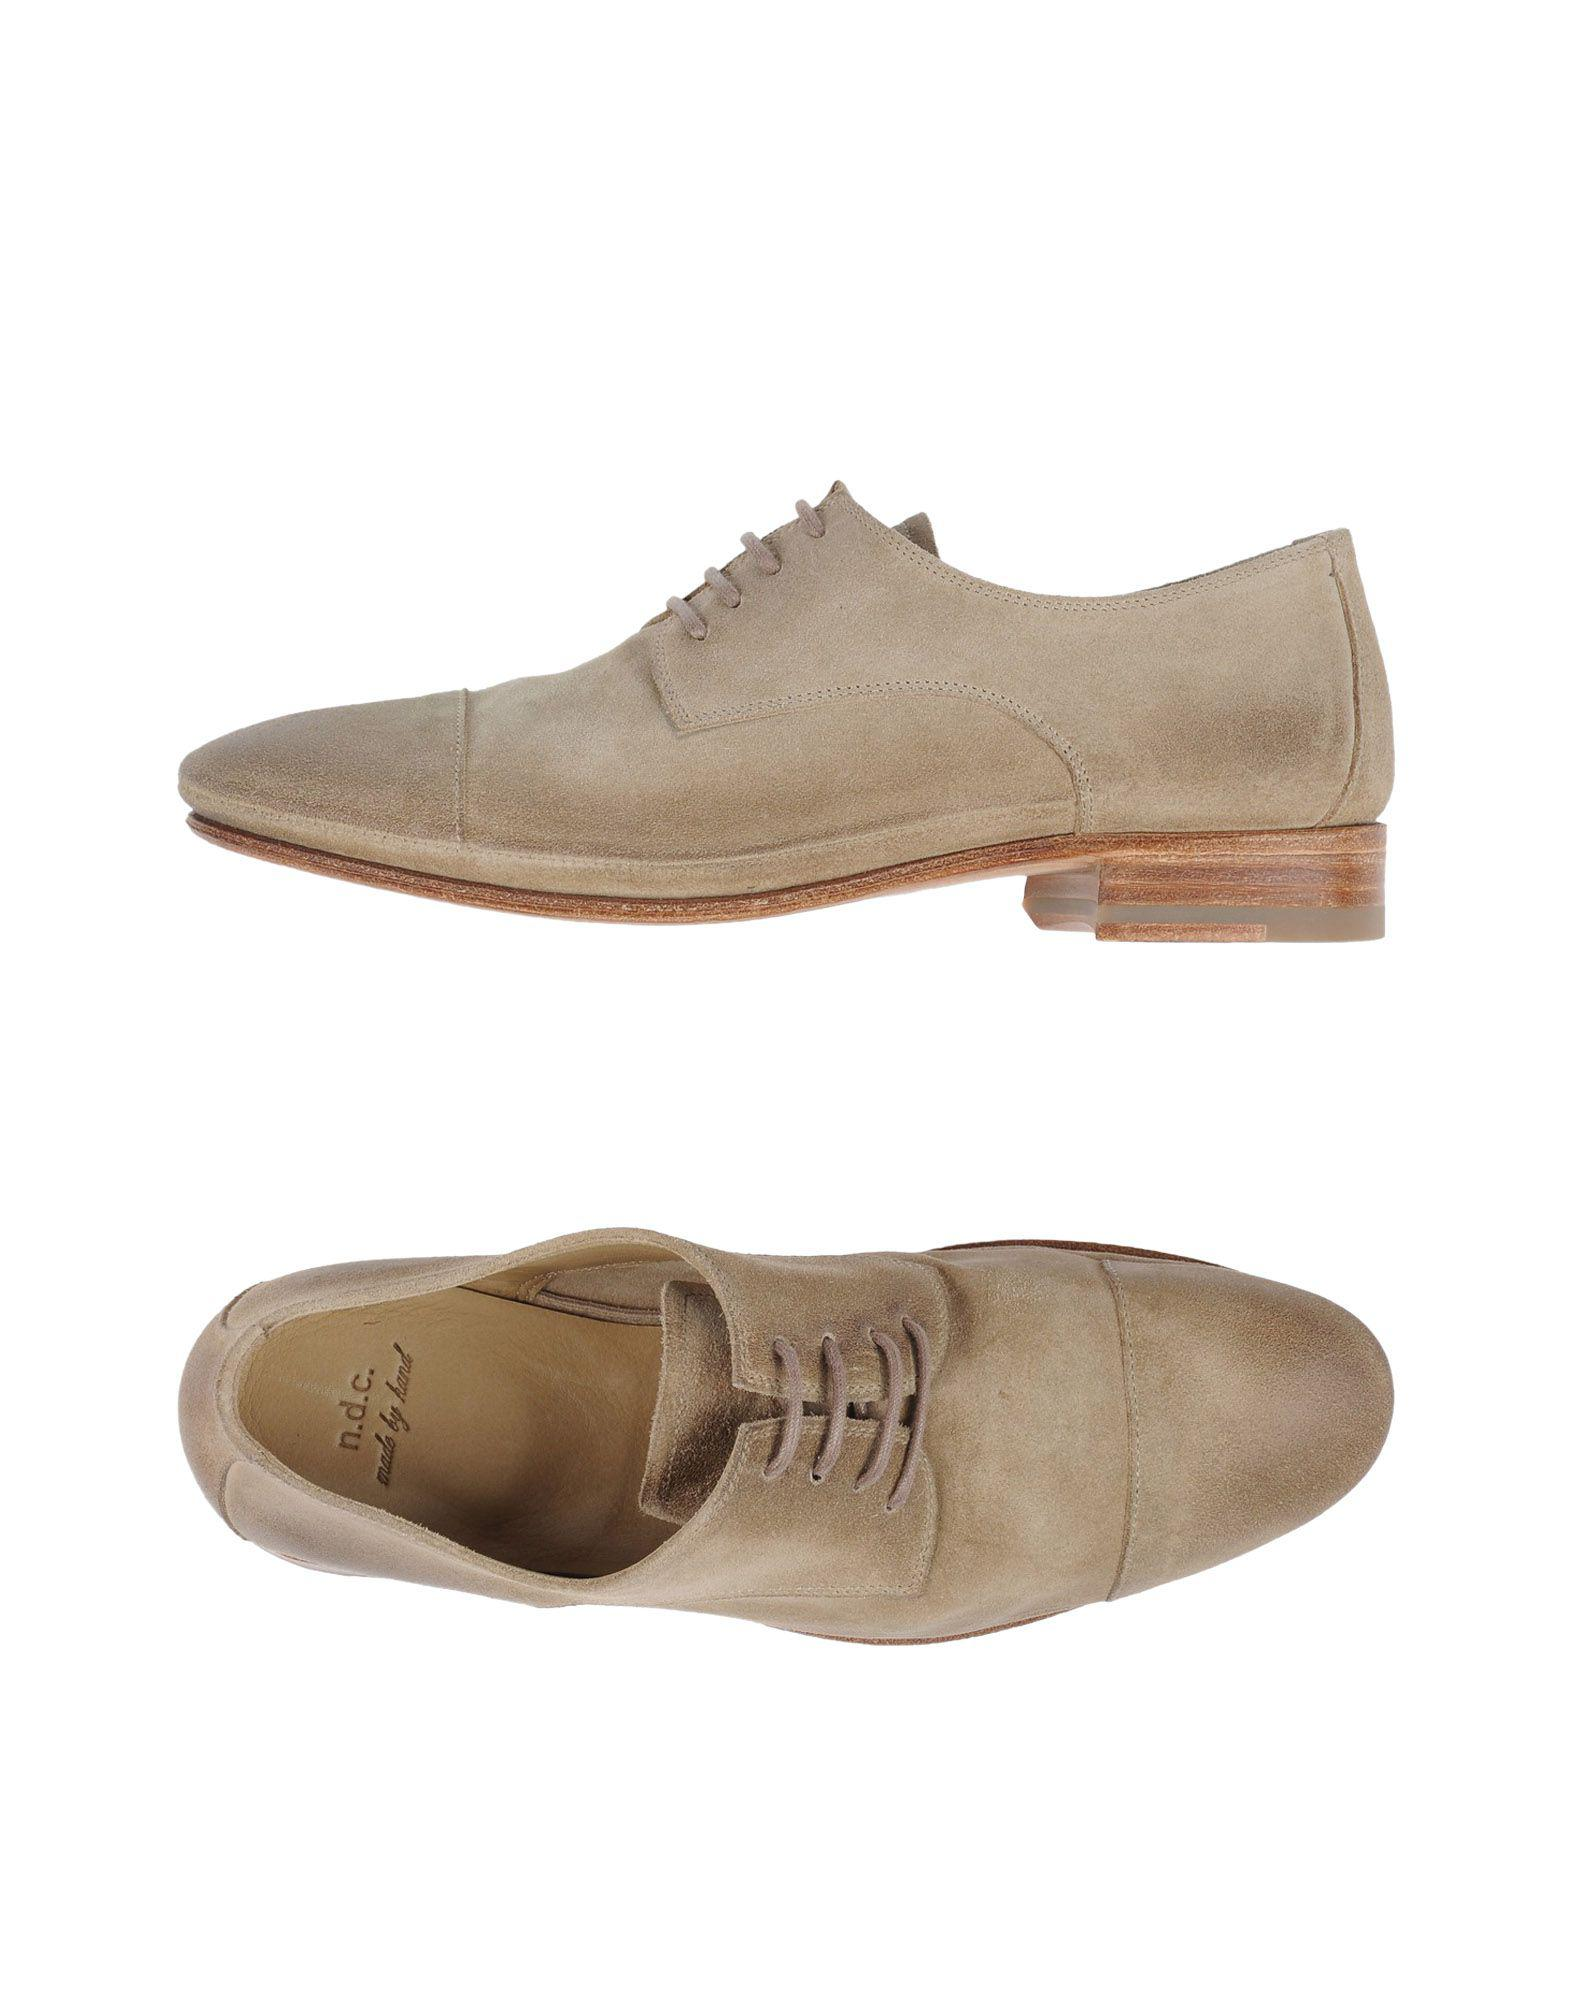 Low Cost N D C Made By Hand Women Laced Shoes Laced Shoes N D C Made By Hand womens Light grey N D C MADE BY HAND Womens Laced shoes